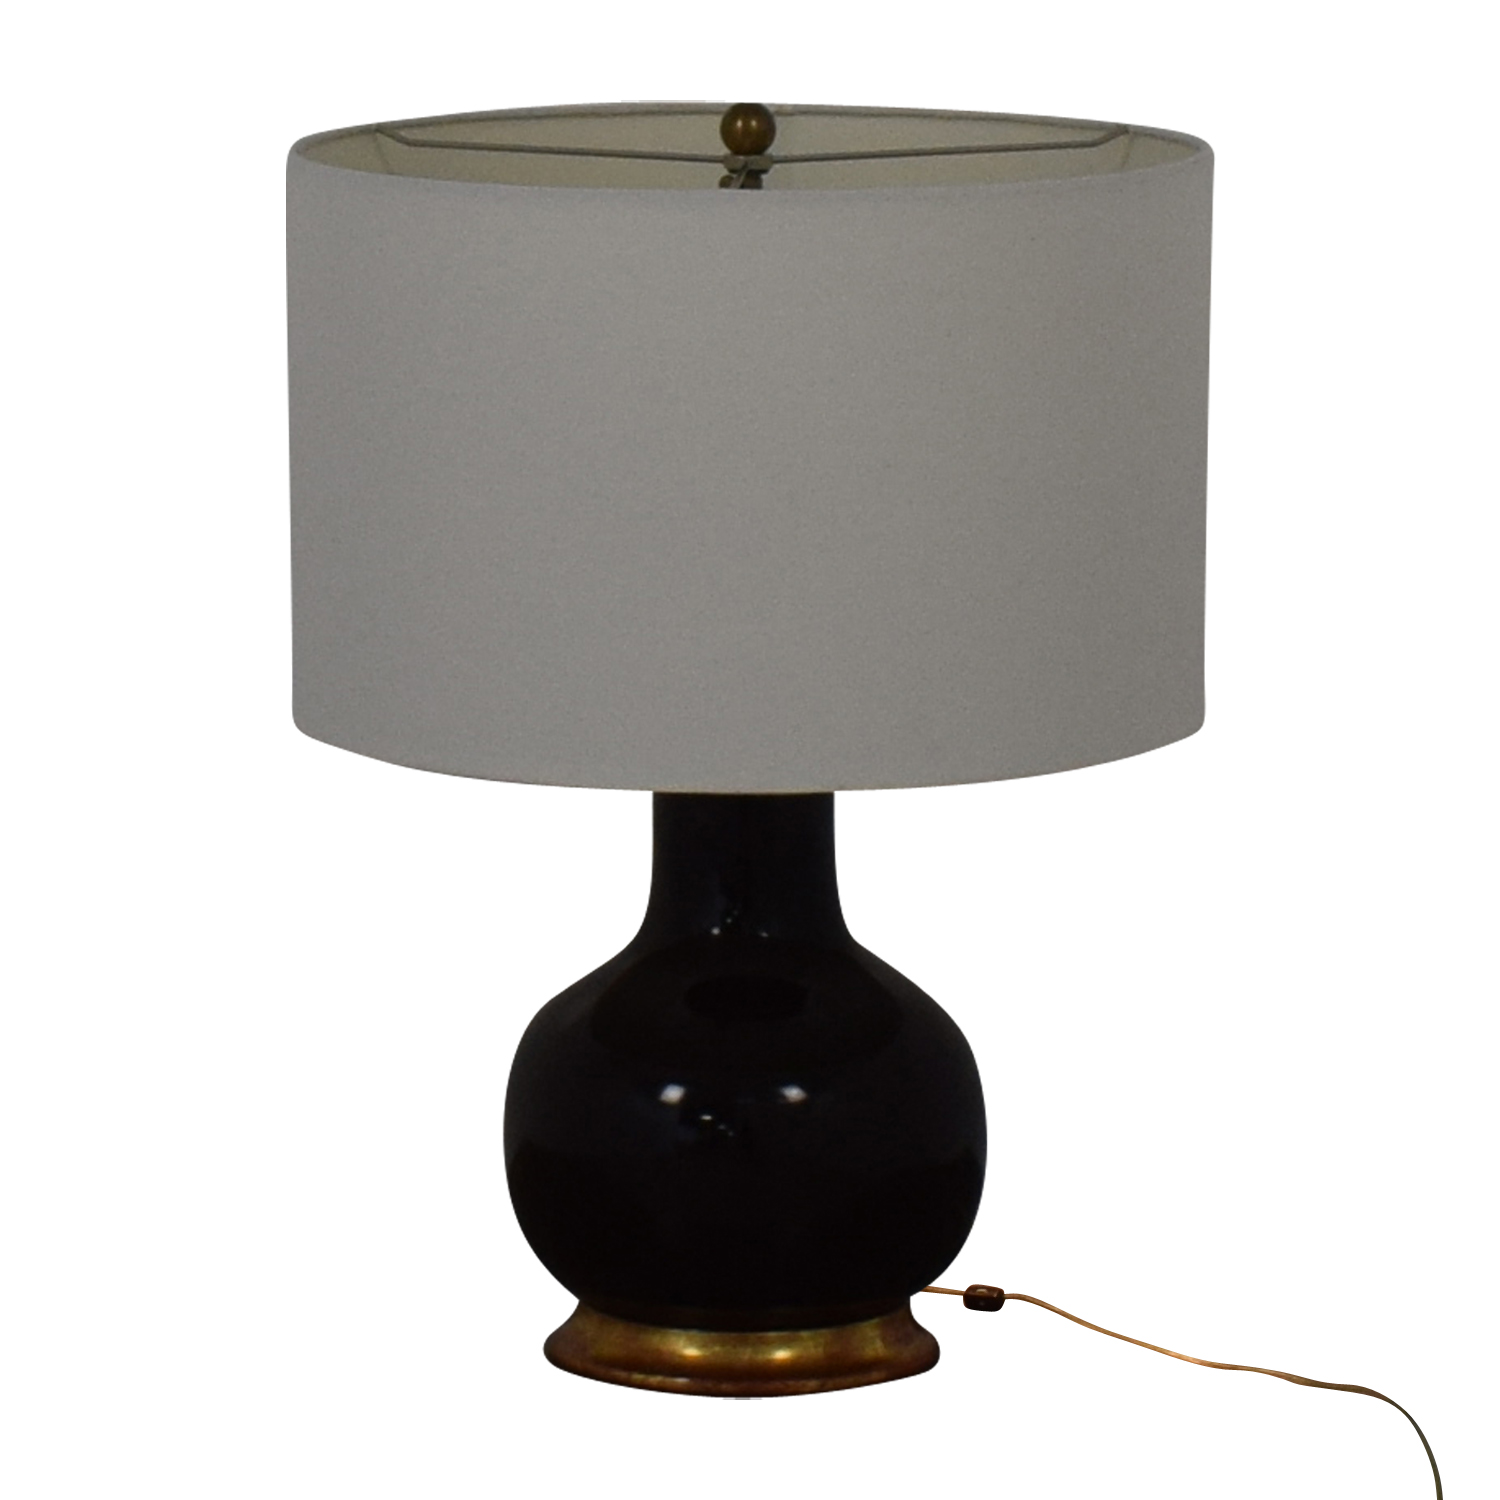 Mecox Gardens Mecox Gardens Christopher Spitzmiller Brown Lamps